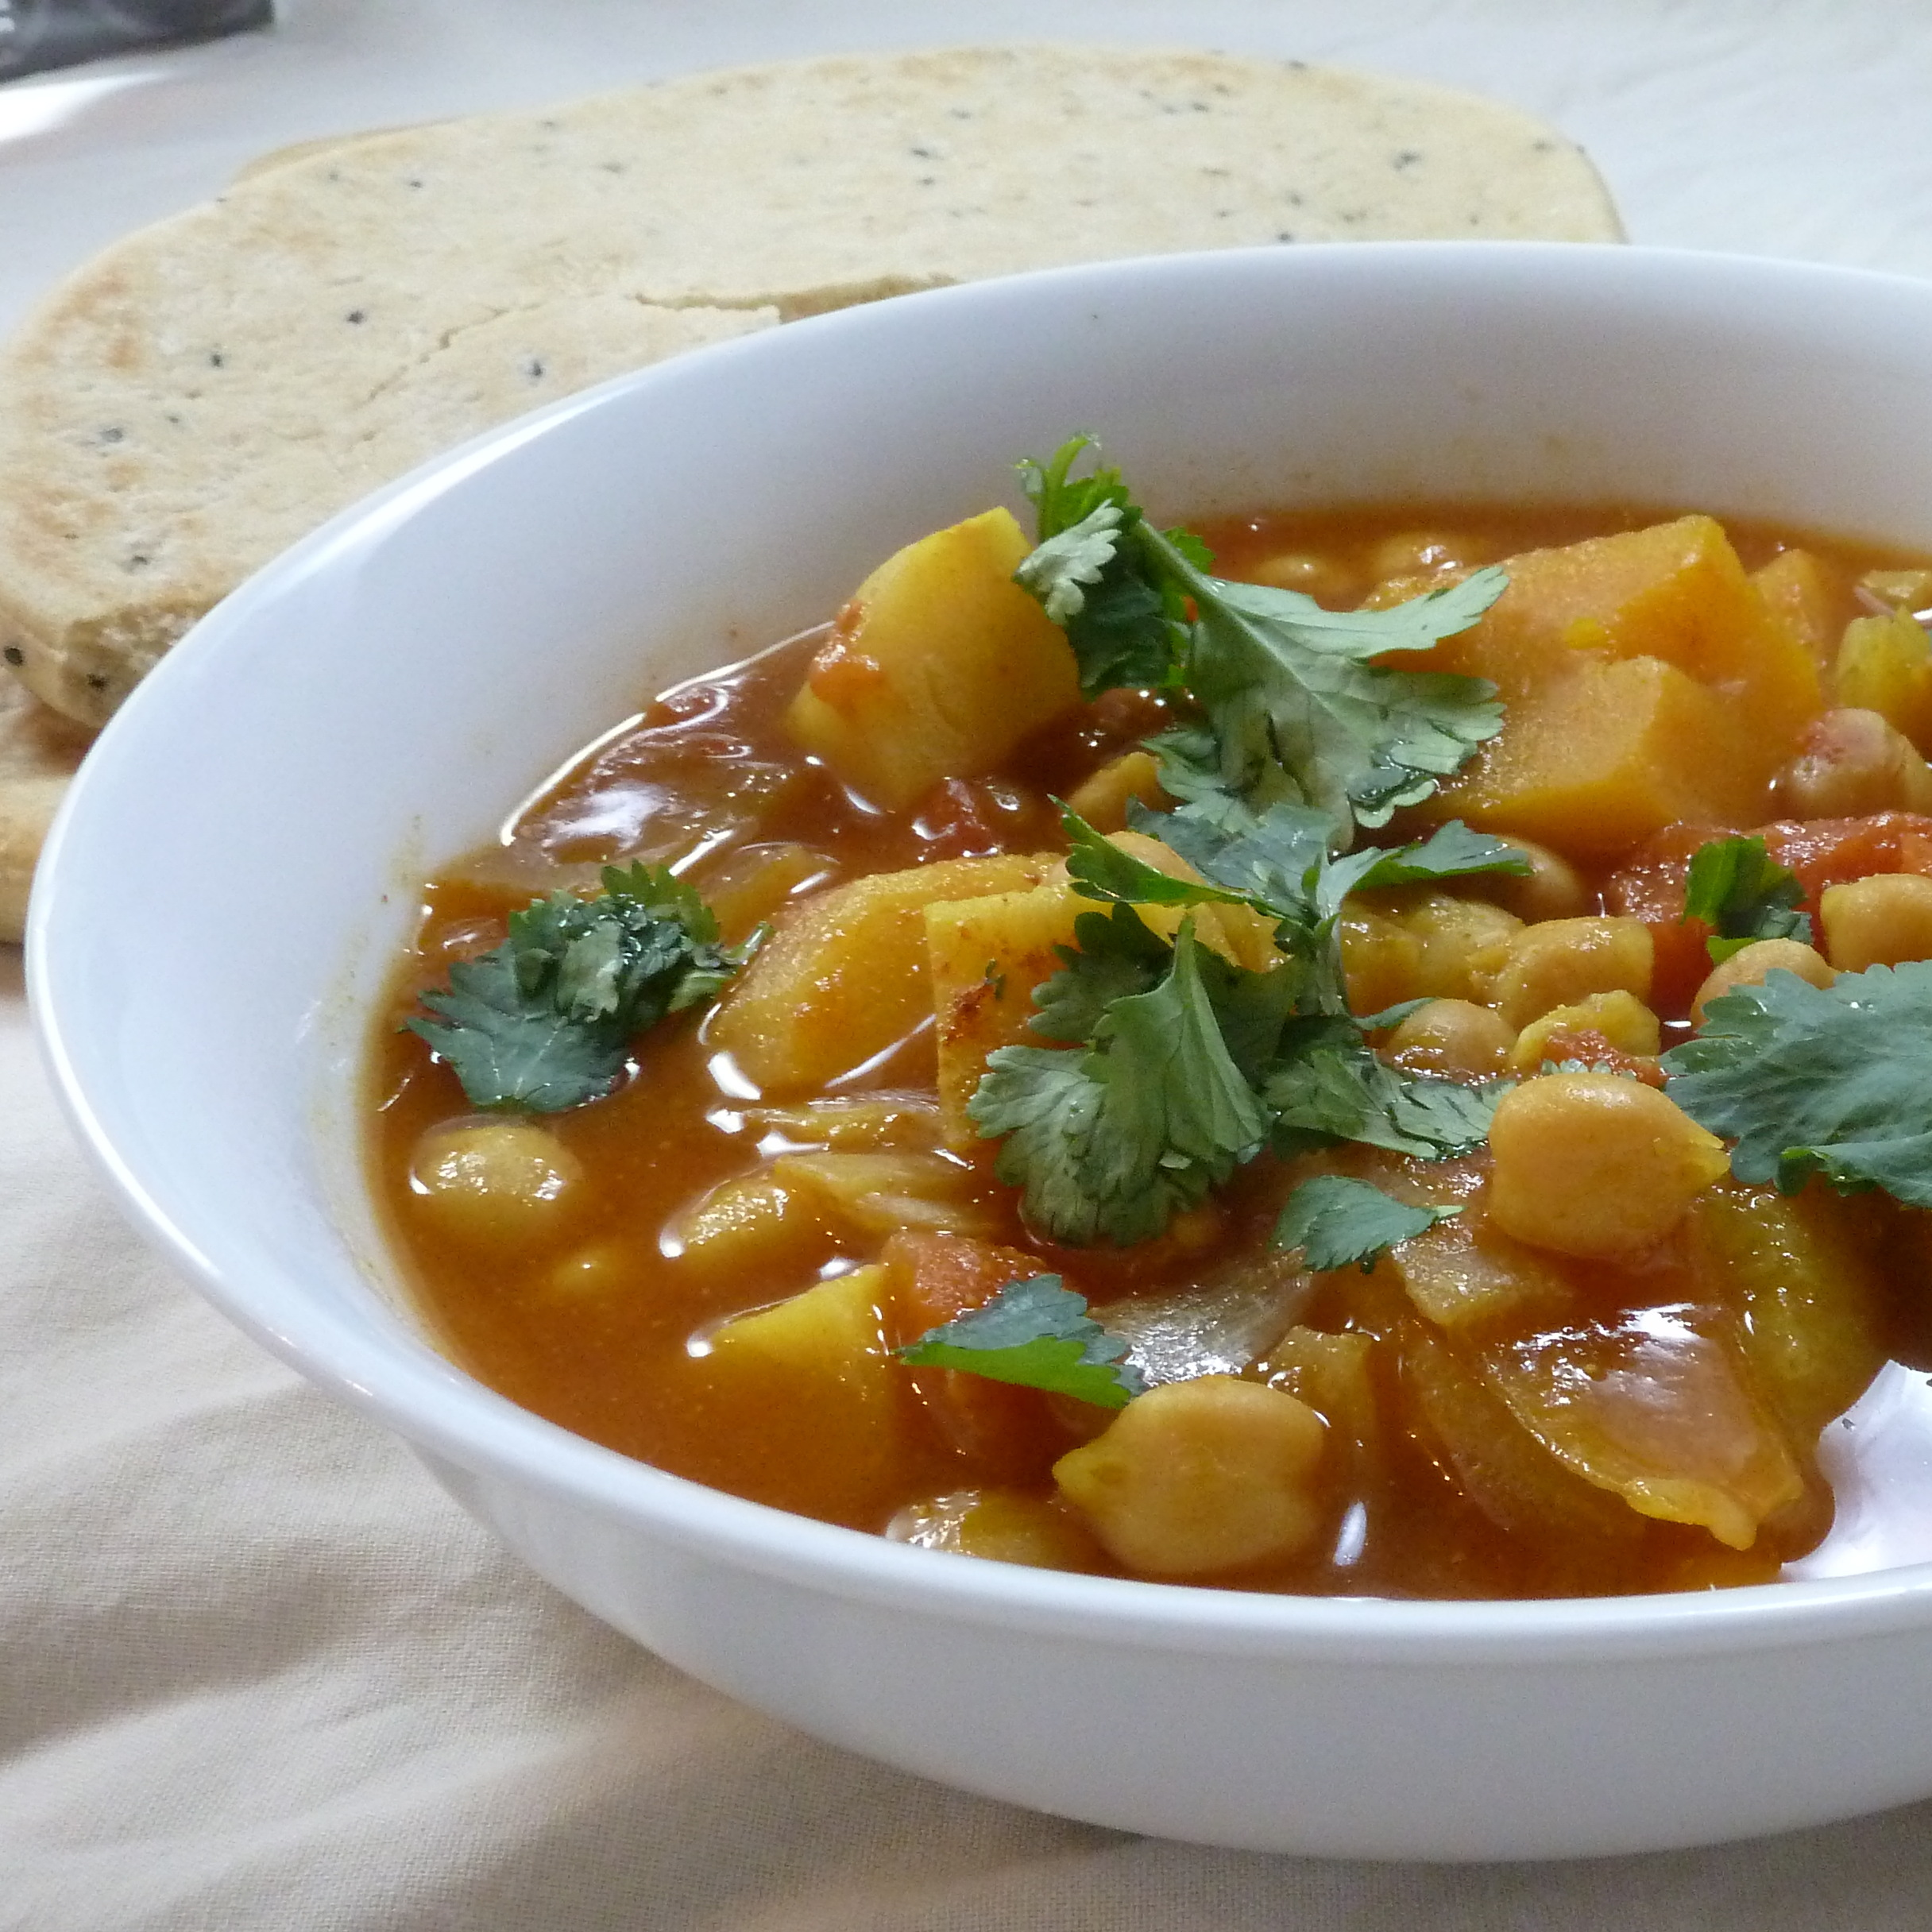 Slow Cooker Chickpea Curry with Parsnips